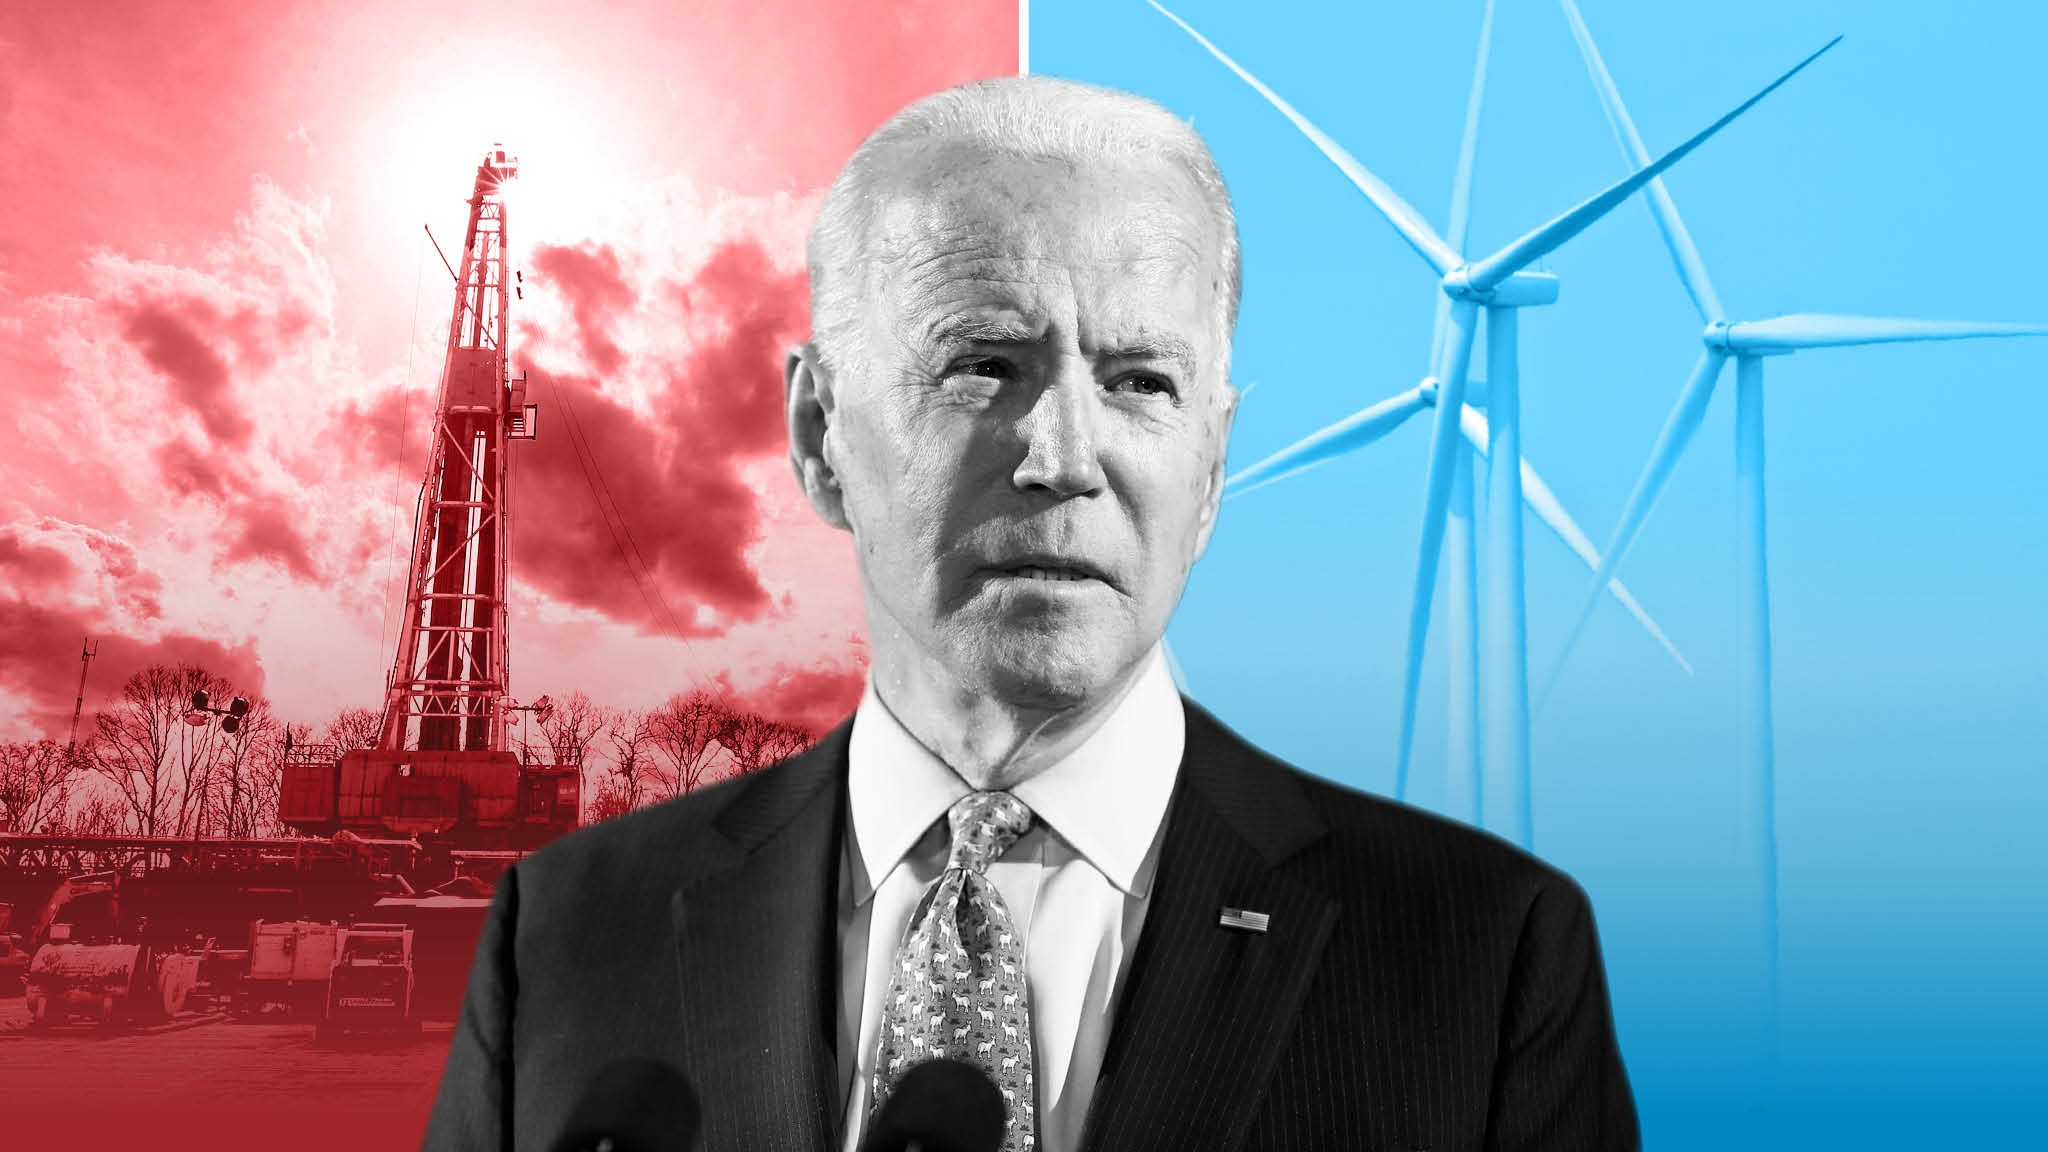 Biden gambles on placing climate change at heart of US energy policy    Financial Times